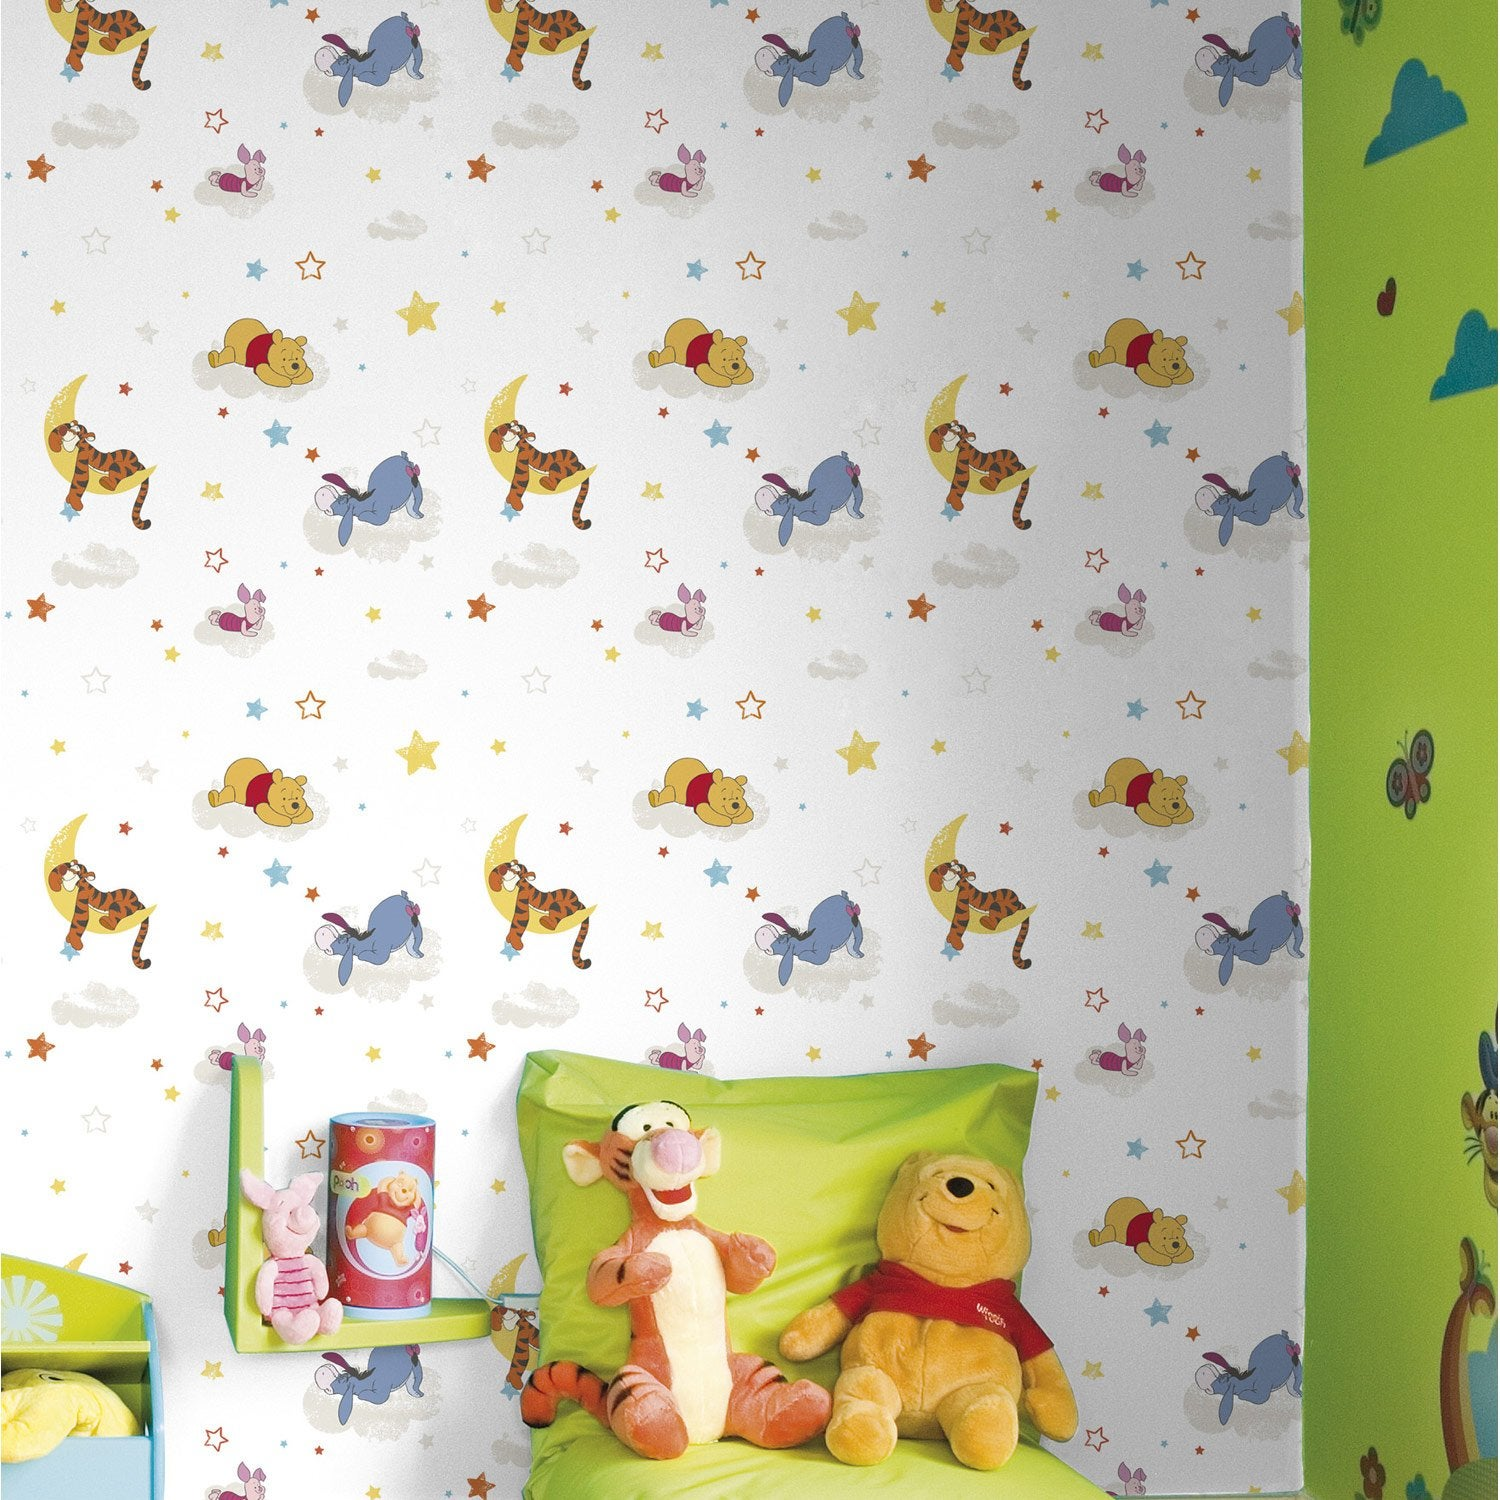 papier peint sur papier disney winnie multi couleur larg m leroy merlin. Black Bedroom Furniture Sets. Home Design Ideas